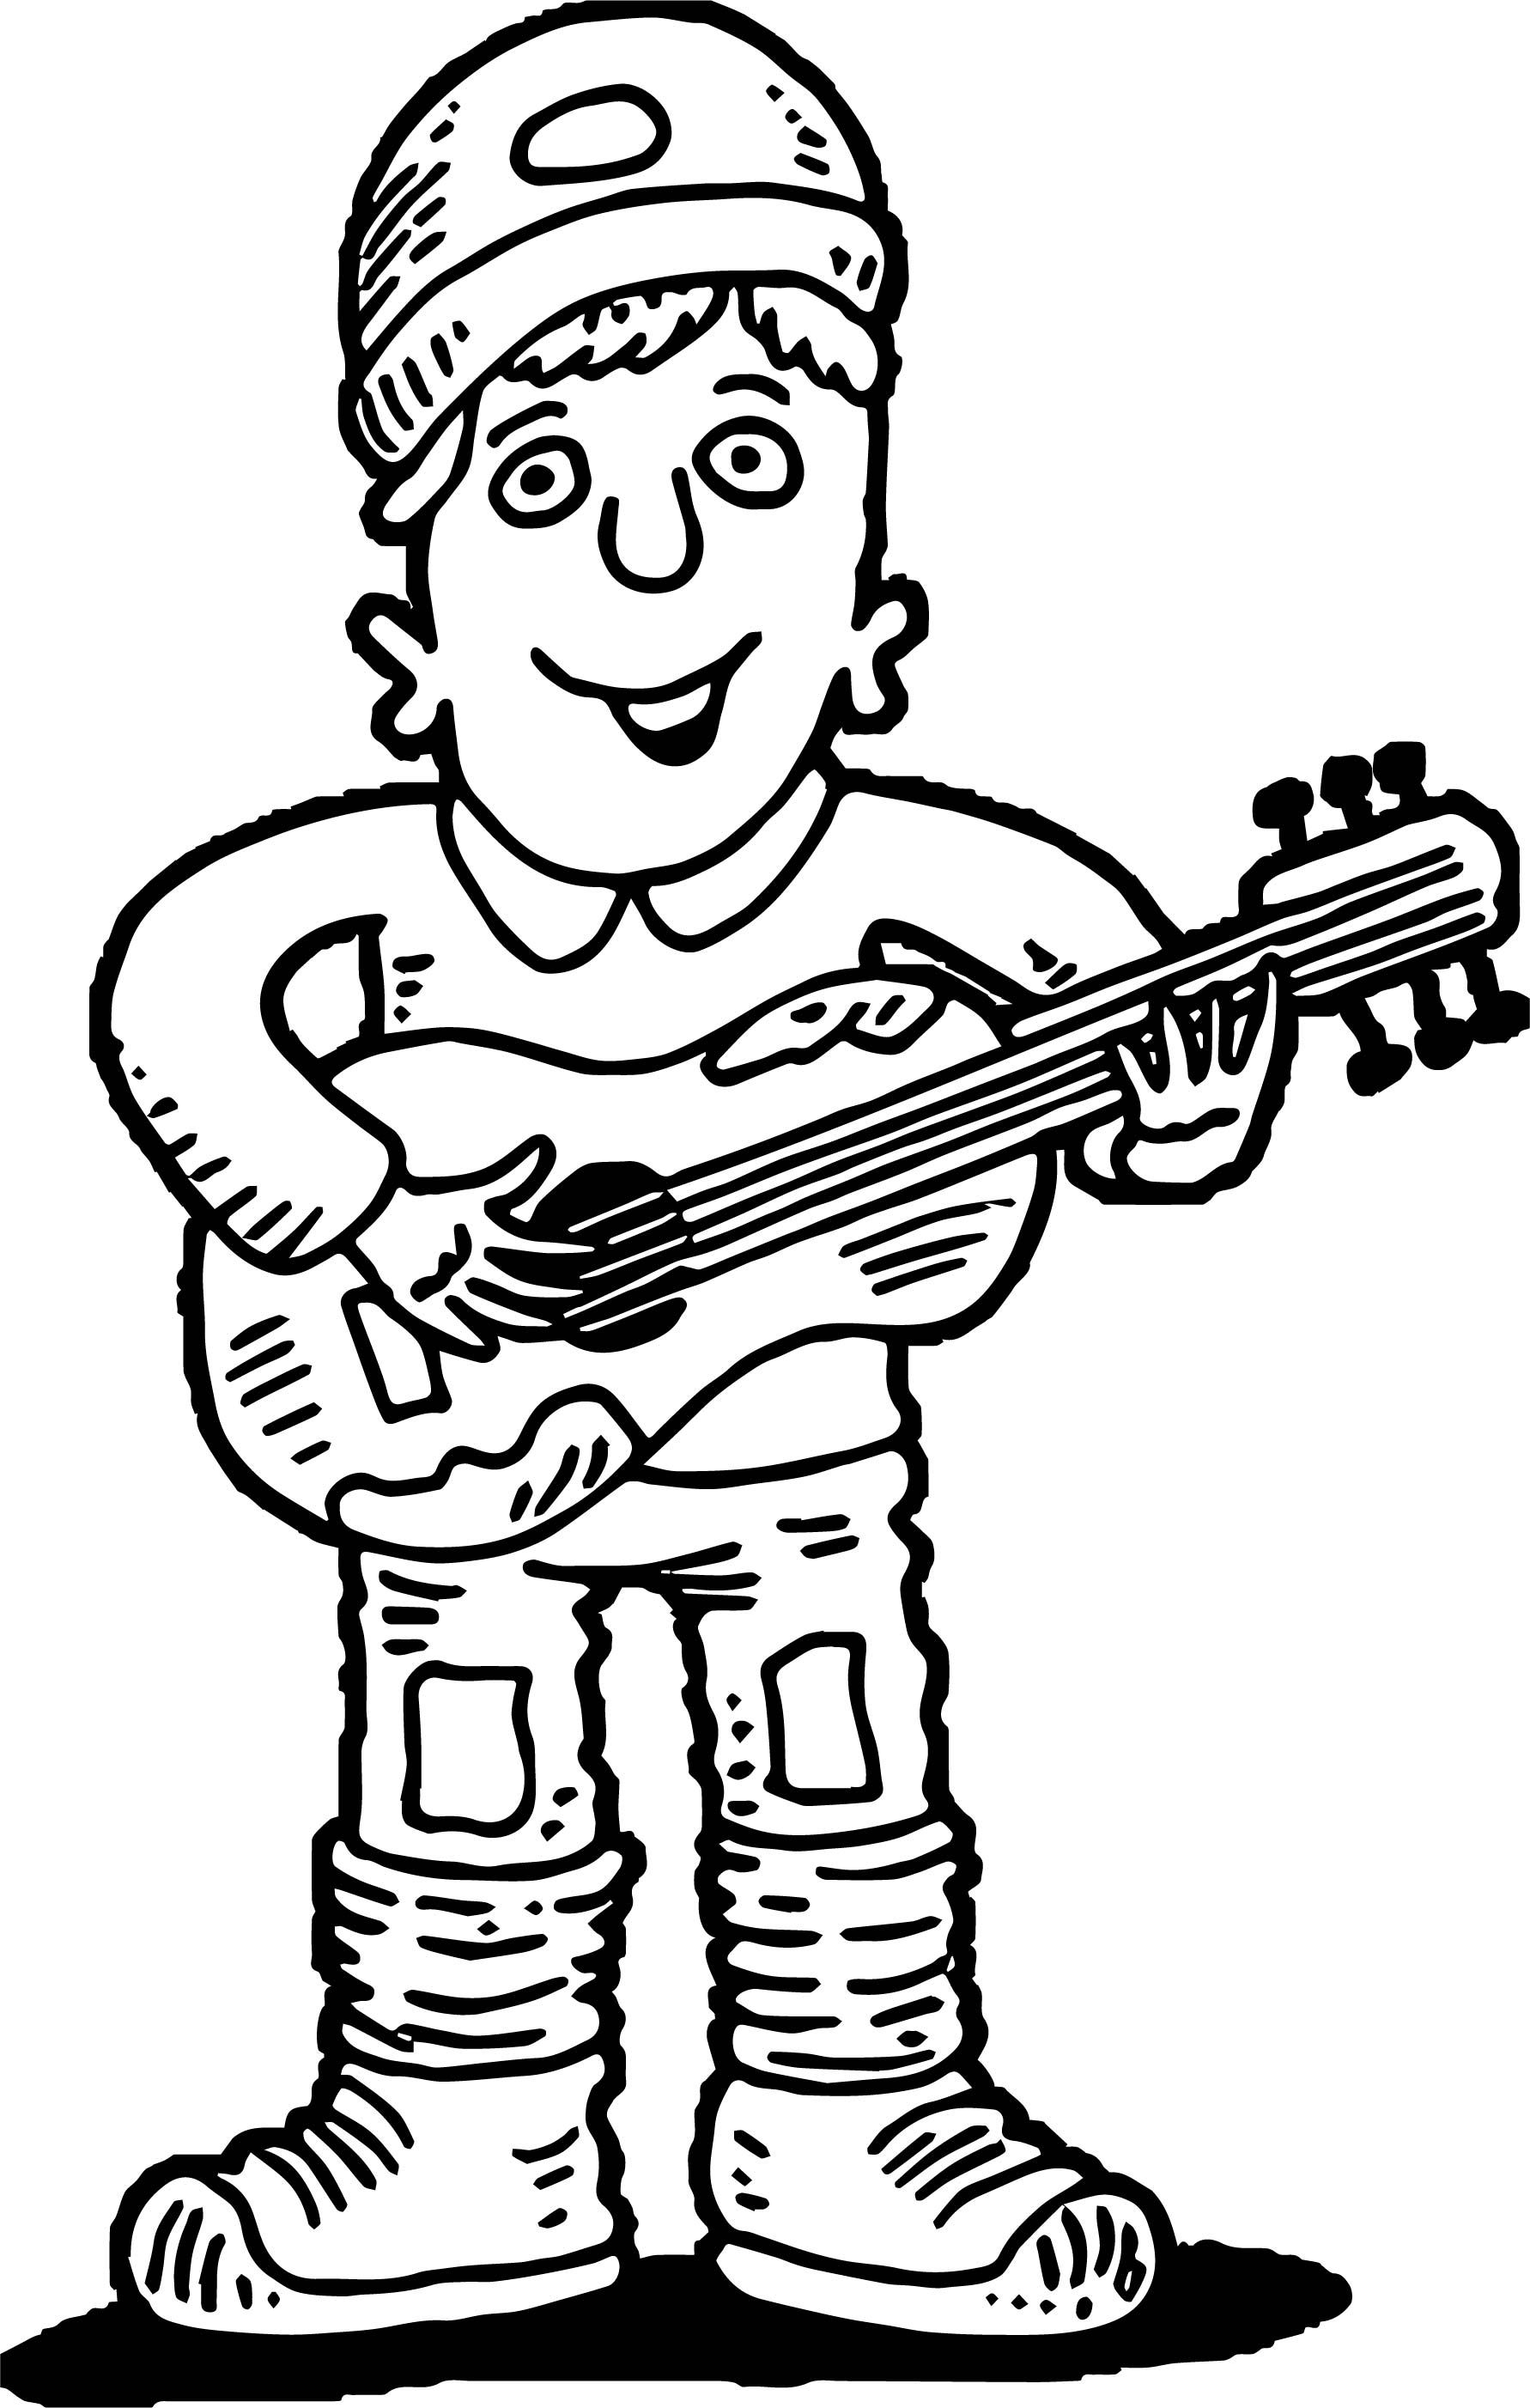 Awesome Guitar Player Playing The Guitar Coloring Page Guitar